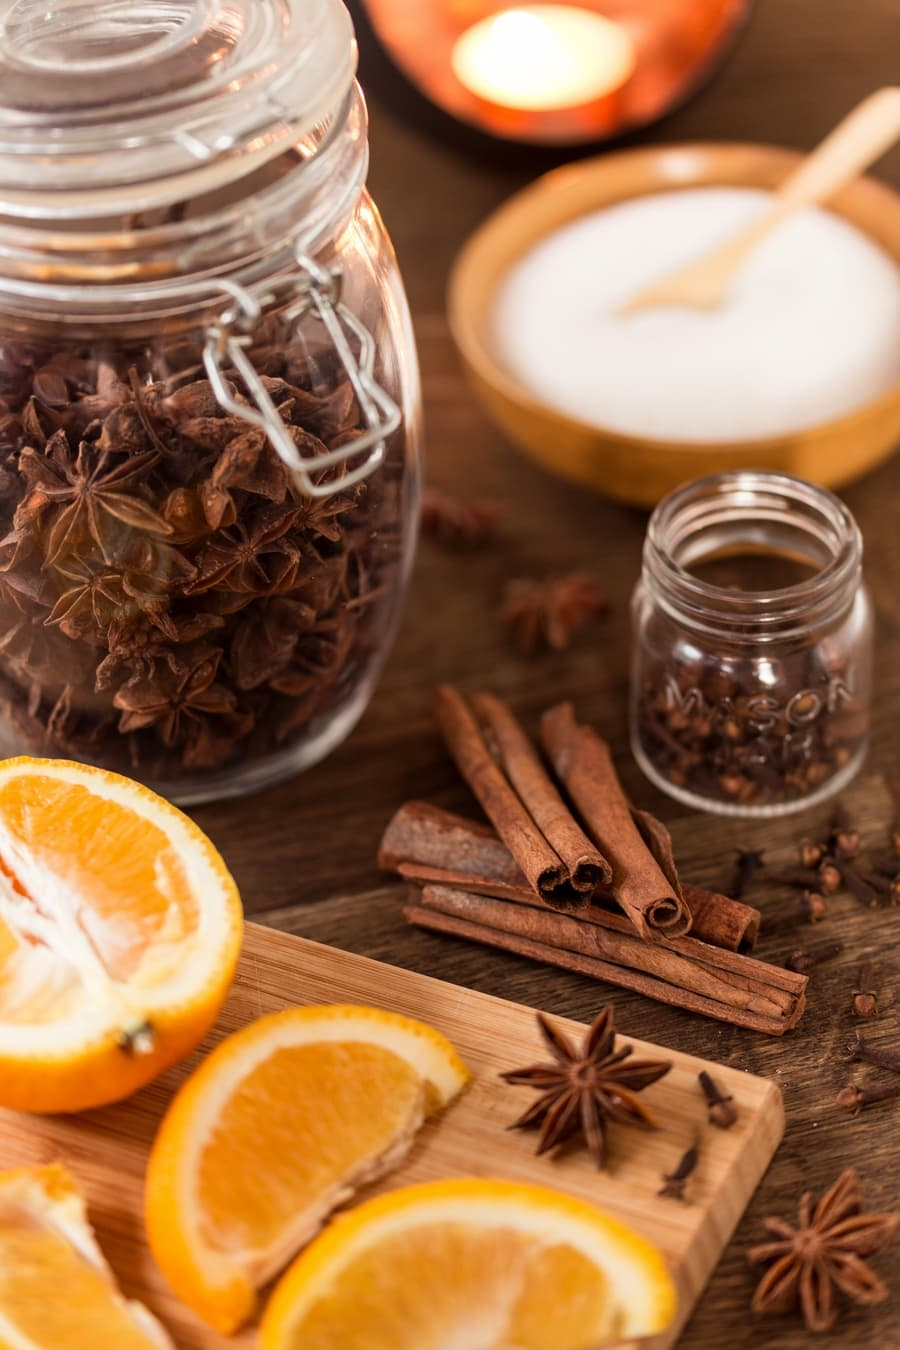 Vin brulé flavours: fresh orange, cinnamon, star anise and cloves.